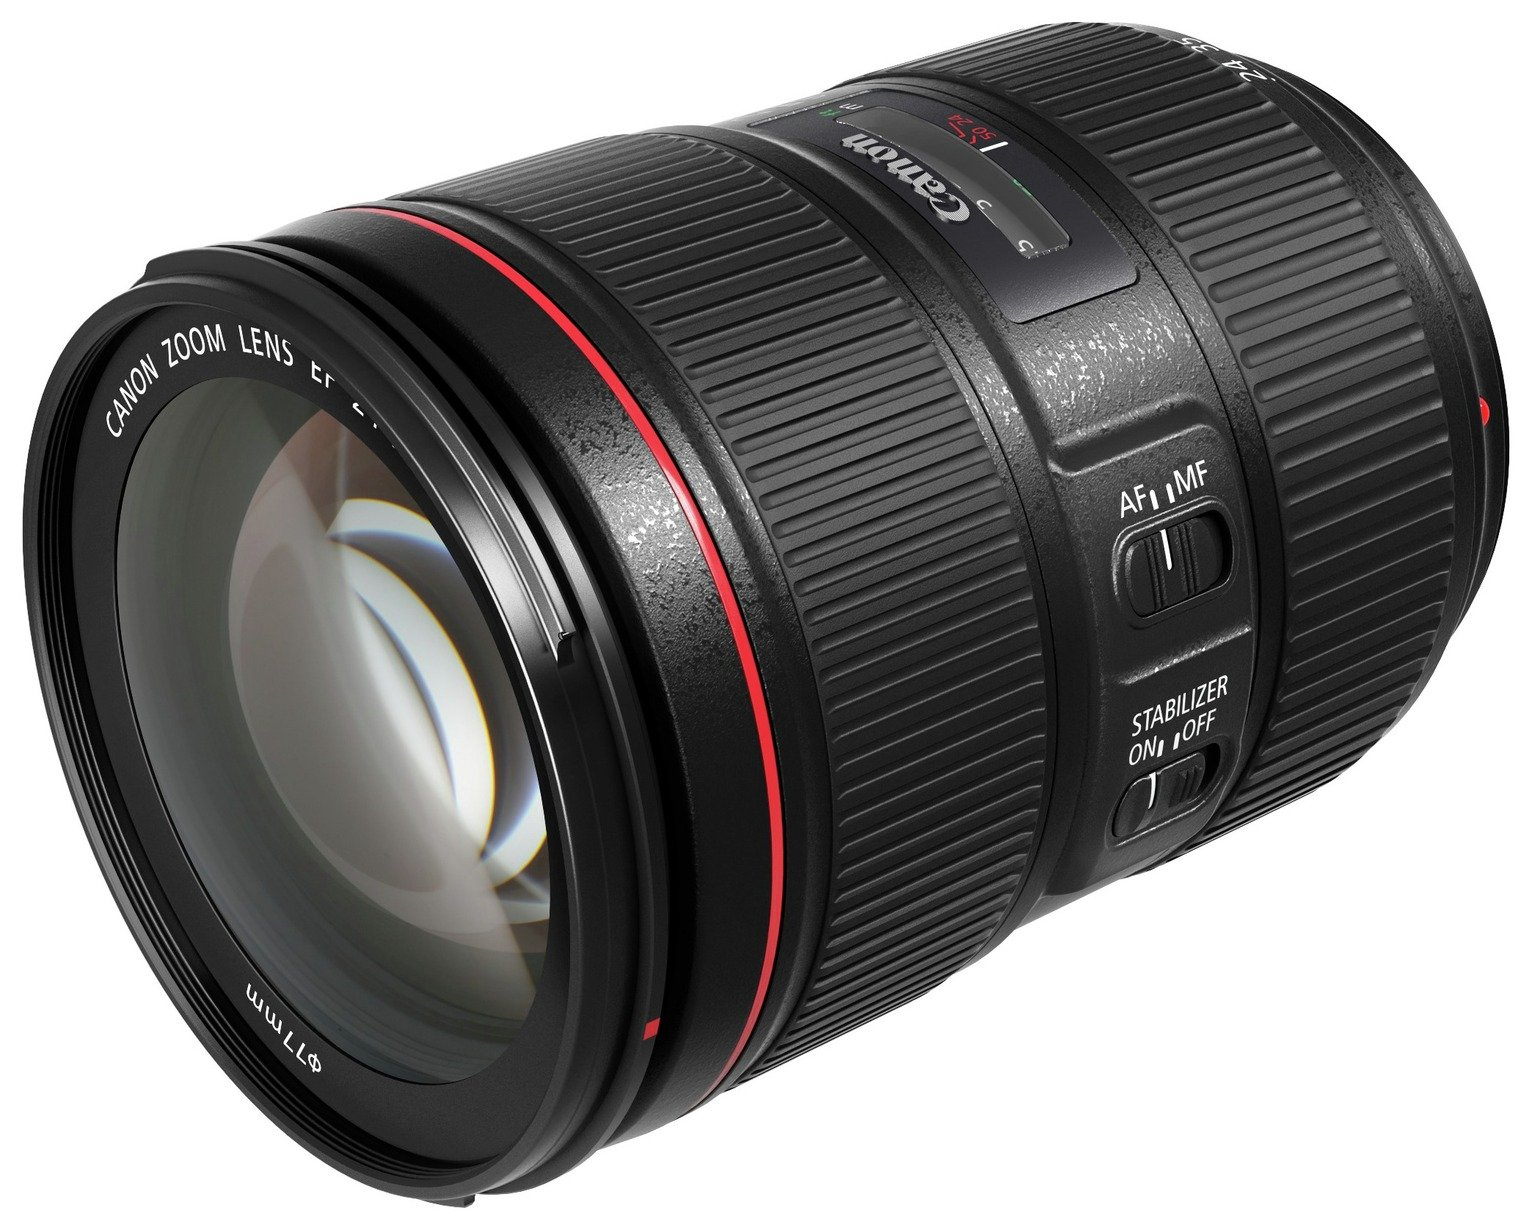 Image of Canon 24-105mm EF/ EF-s Lens